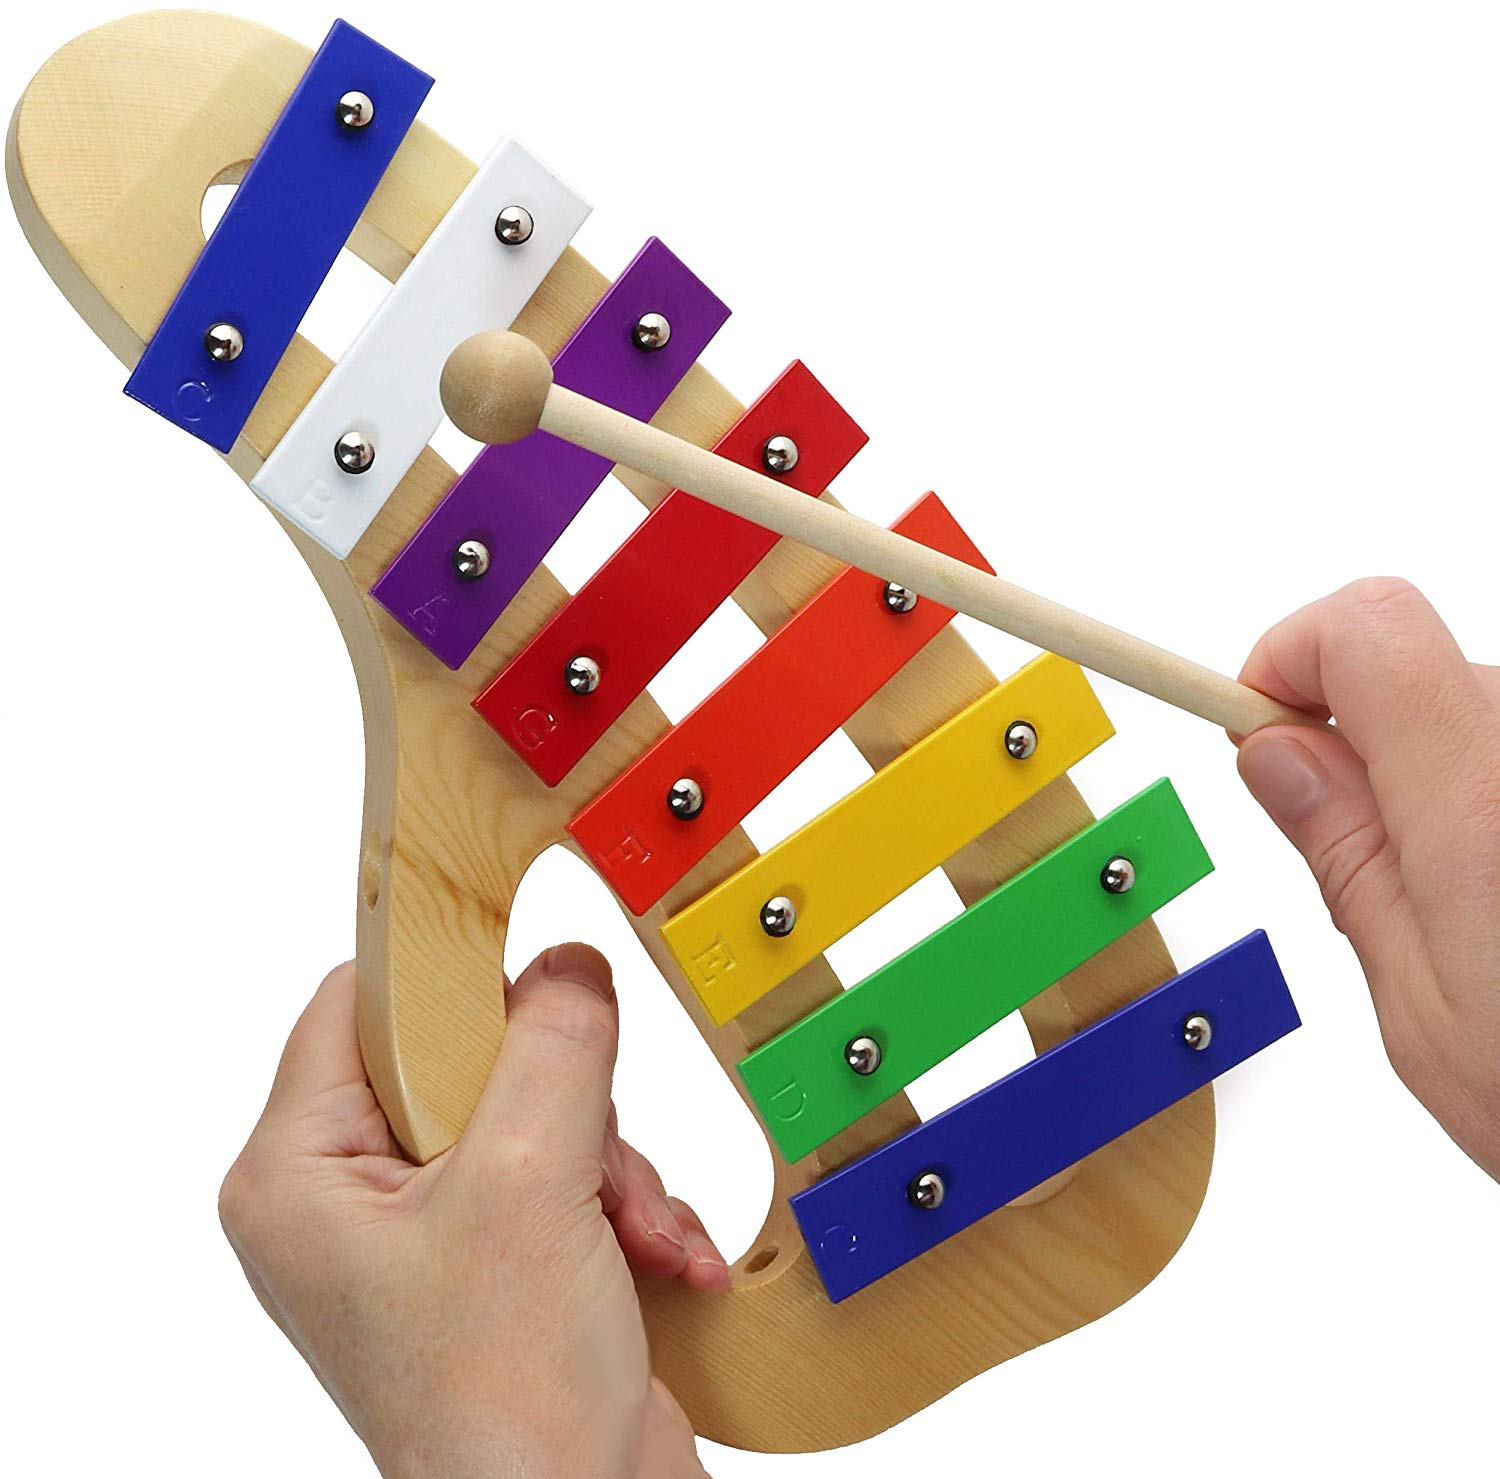 Xylophone for Children - 15 Color-Coded Song Sheet Music E-book for this Children Glockenspiel